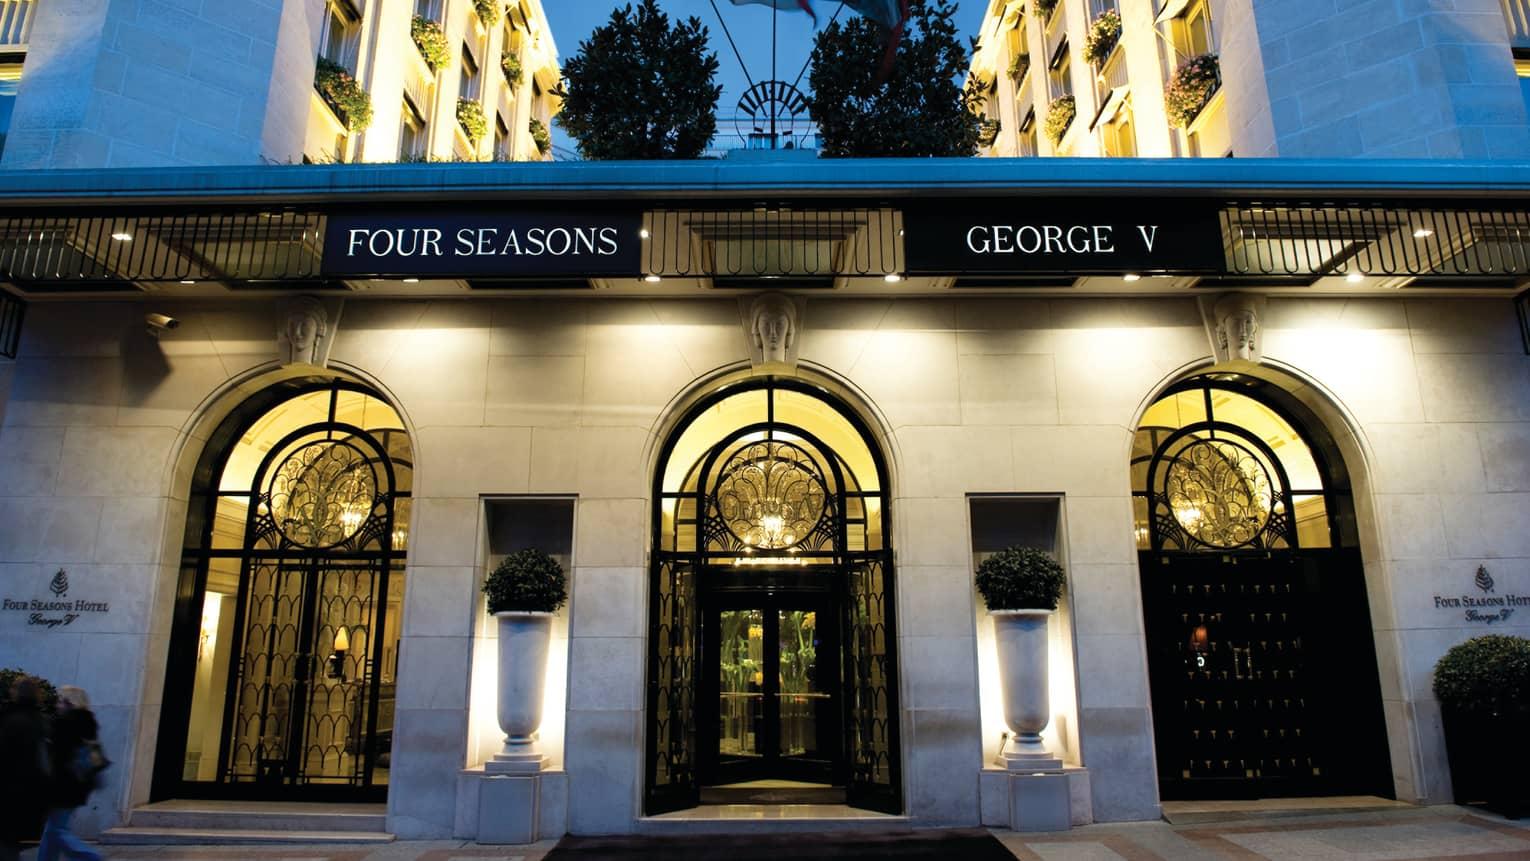 Four Seasons Hotel George V Paris